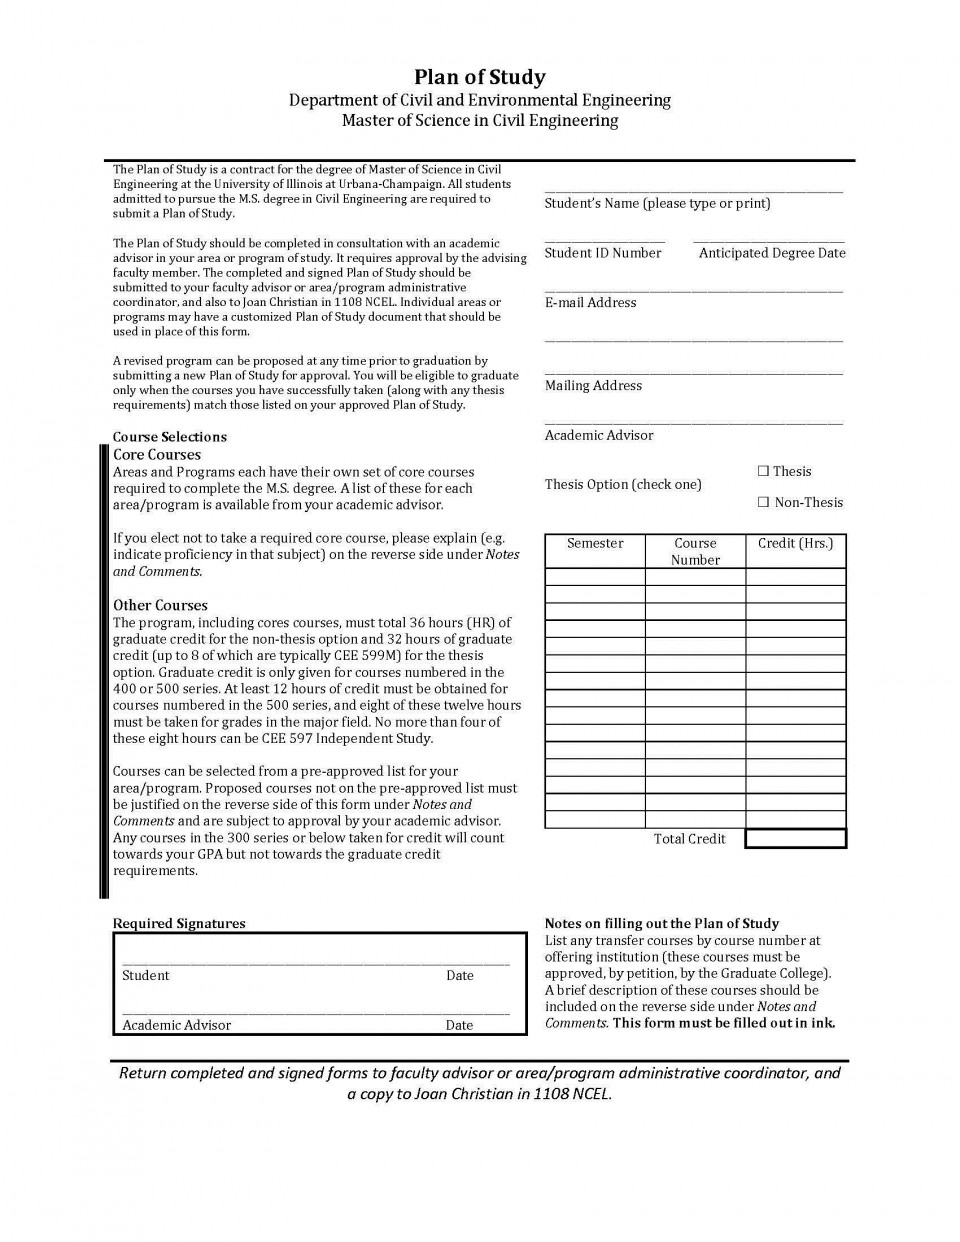 018 Plan Of Study Research Paper Awesome Form Format Apa Scientific Example 960